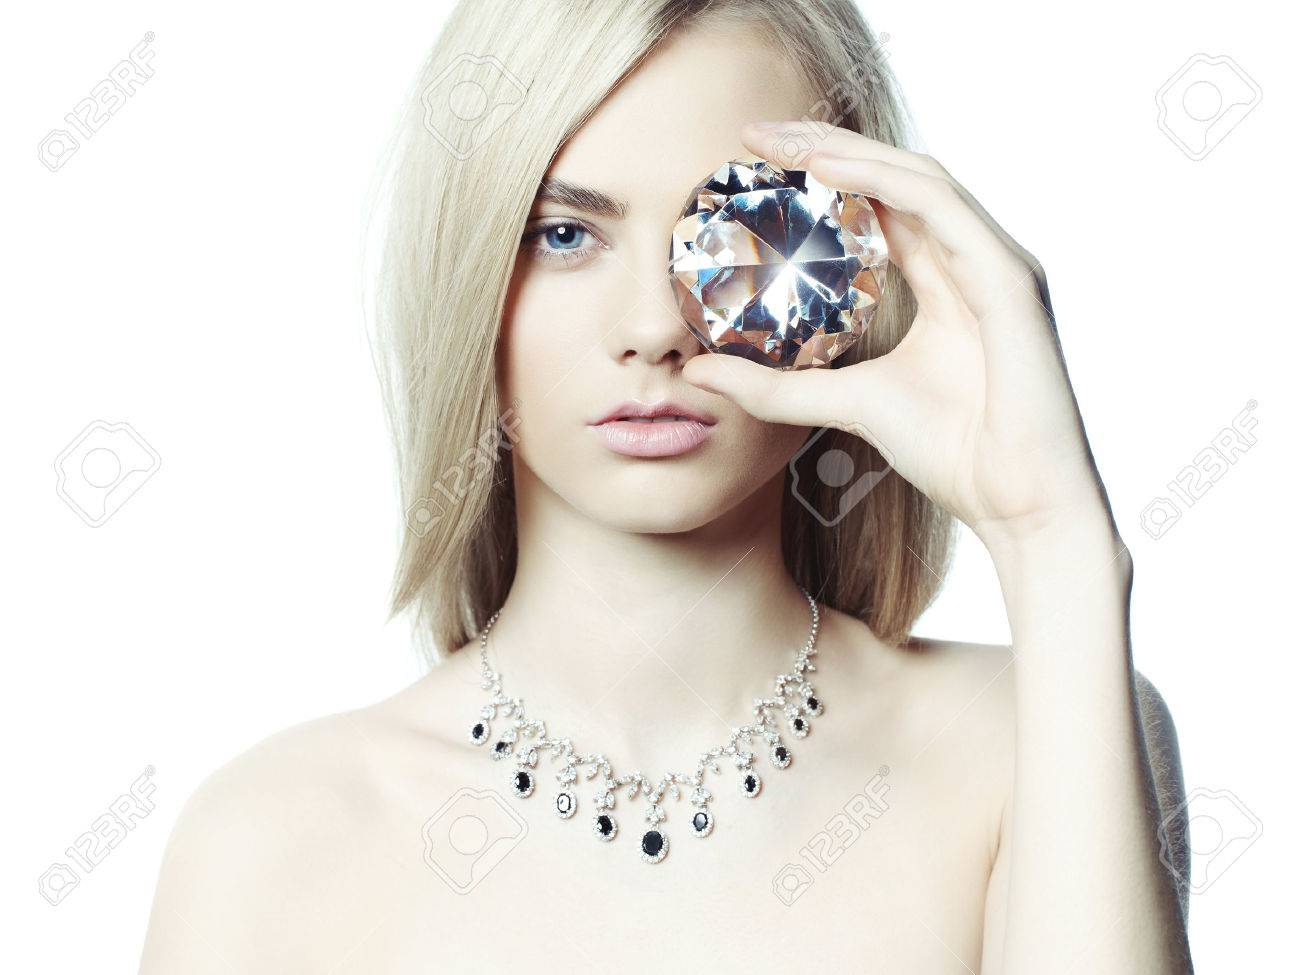 Studio fashion portrait of young beautiful lady in jewelry Standard-Bild - 38121288